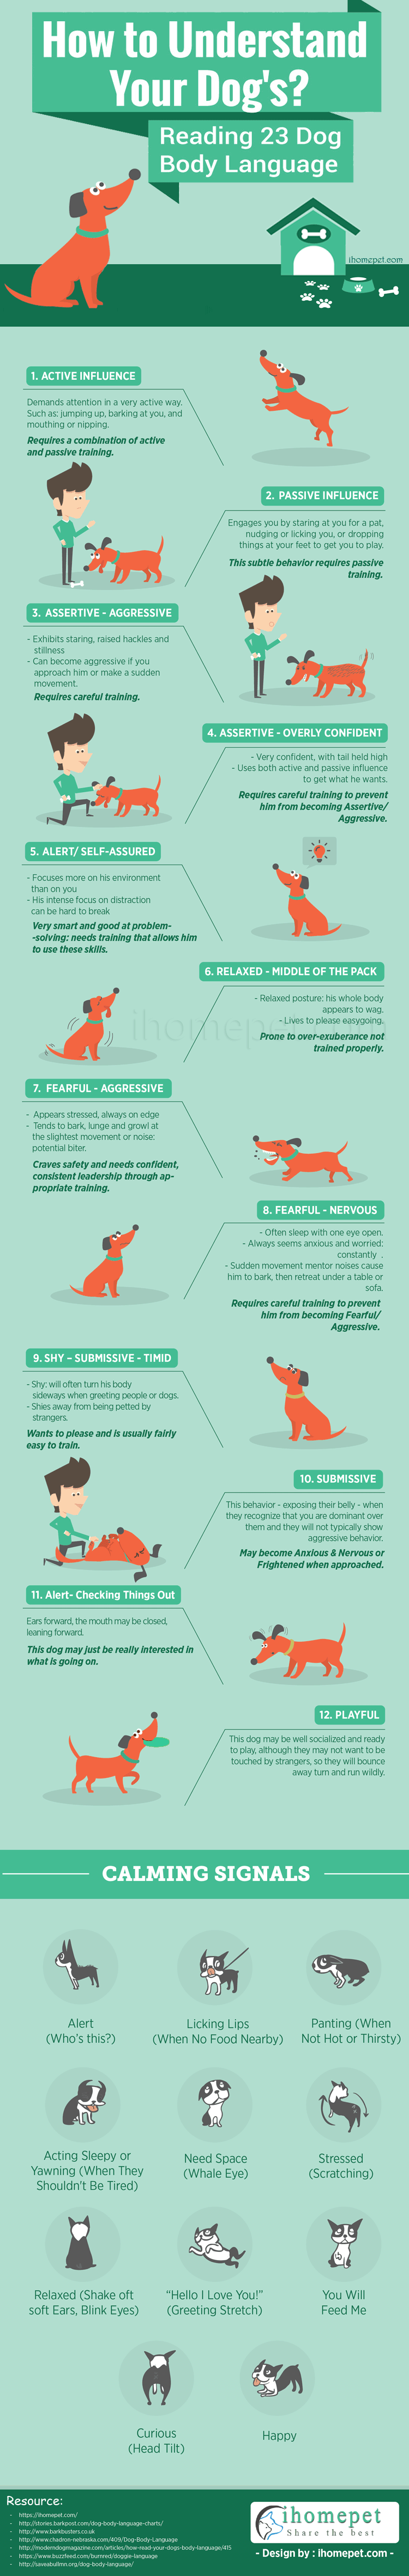 Help You Read Your Dog's Body Language - Reading 23 Dog Body Languages